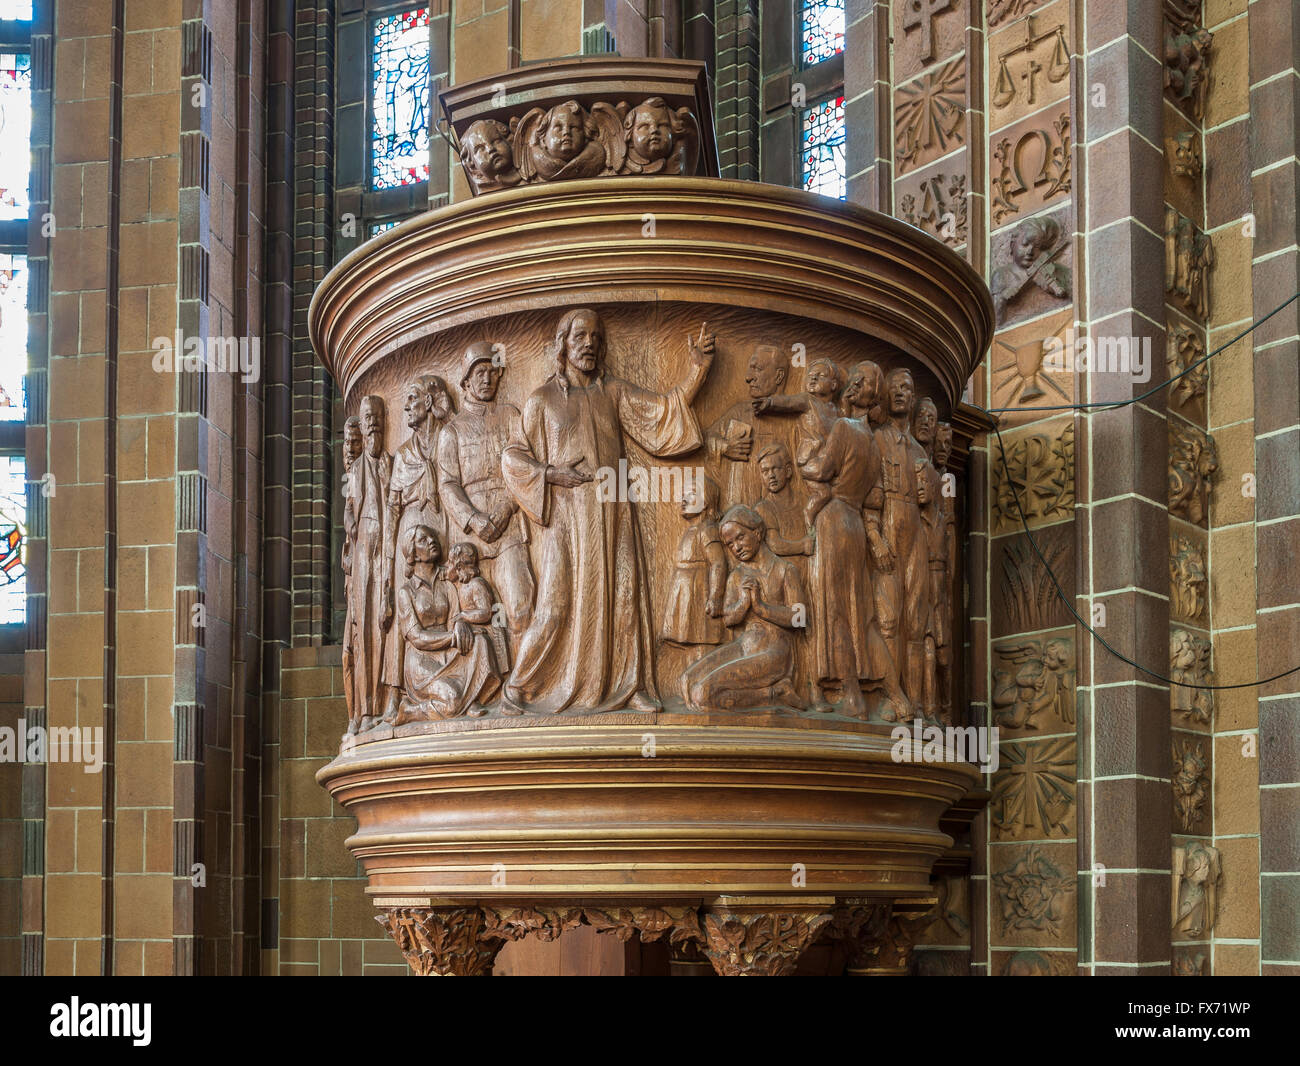 Wooden pulpit with Nazi symbolism, soldier, SA-man and Hitler Youth, Sermon on the Mount, Martin Luther Memorial - Stock Image